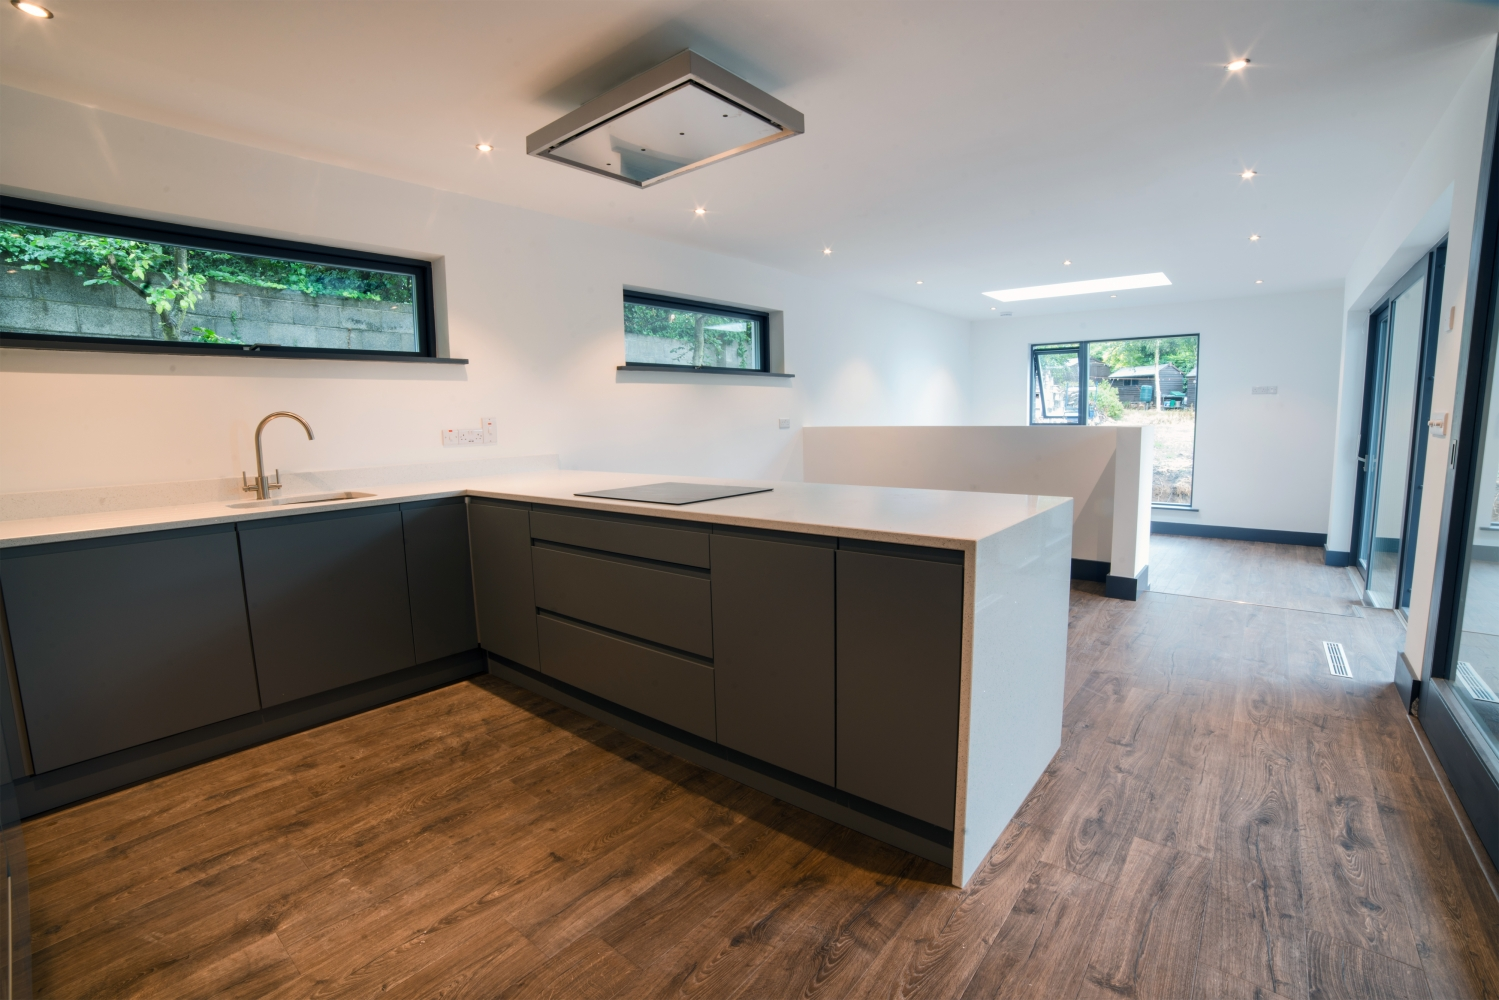 Award Winning Architect Kitchen Design Dublin Ireland